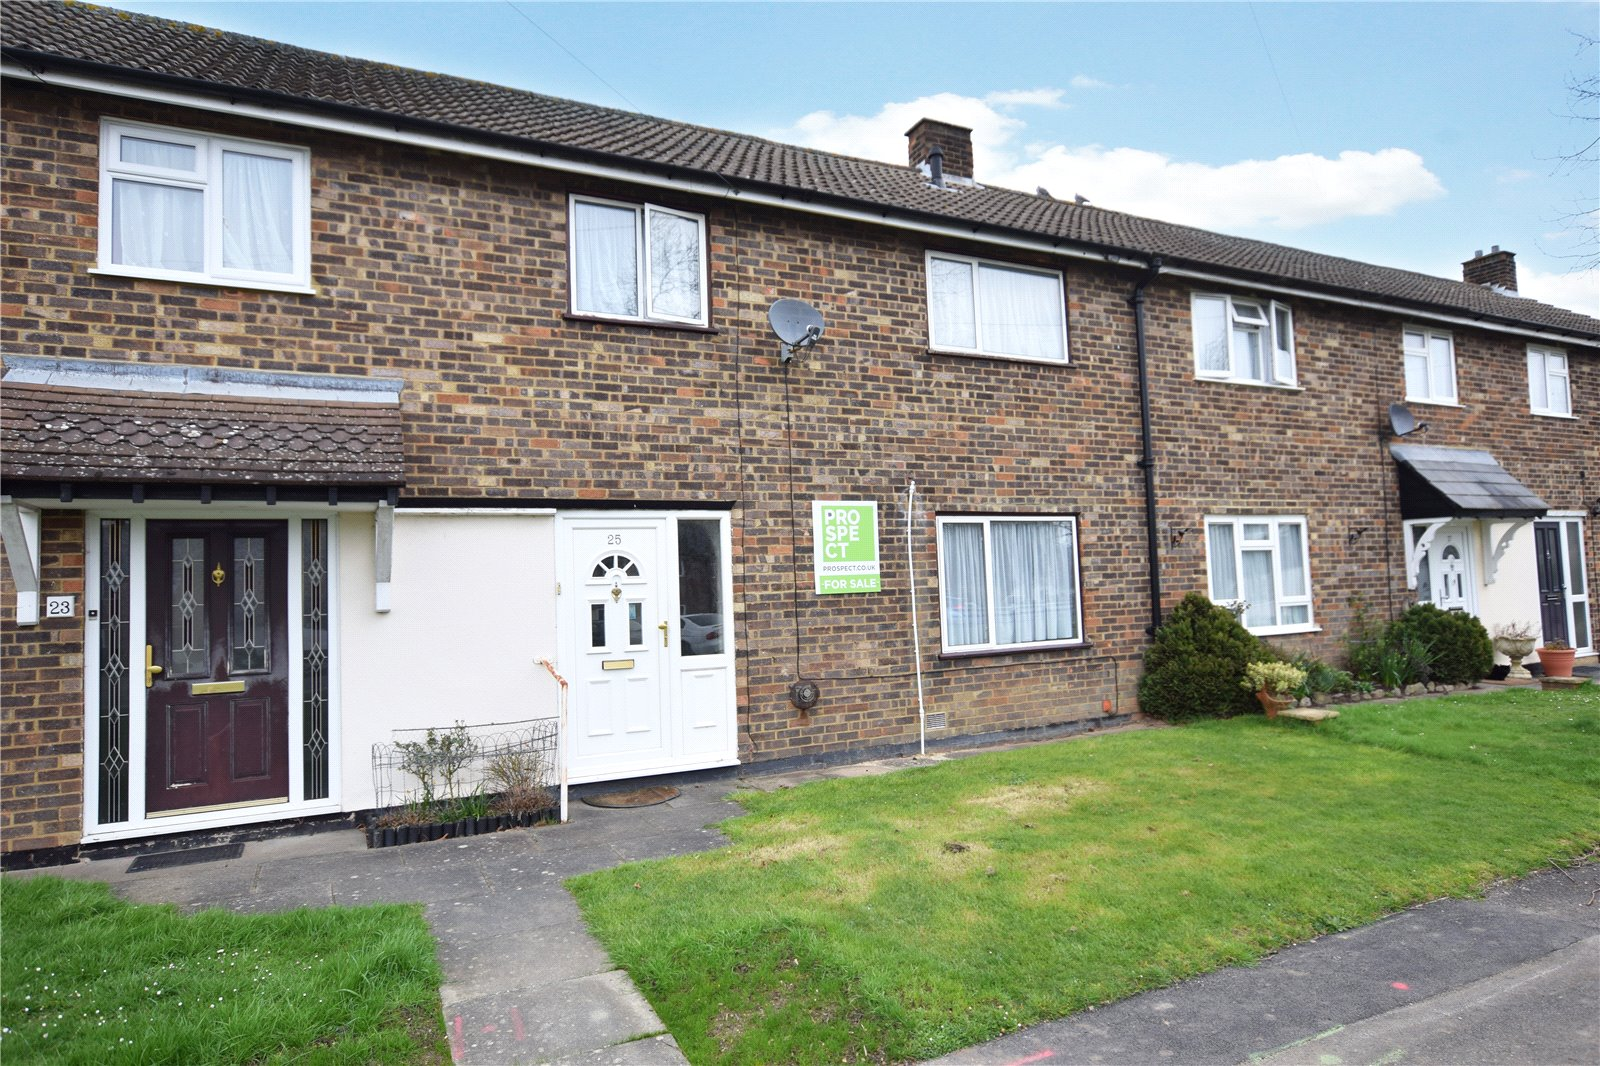 3 Bedrooms Terraced House for sale in Deepfield Road, Bracknell, Berkshire, RG12